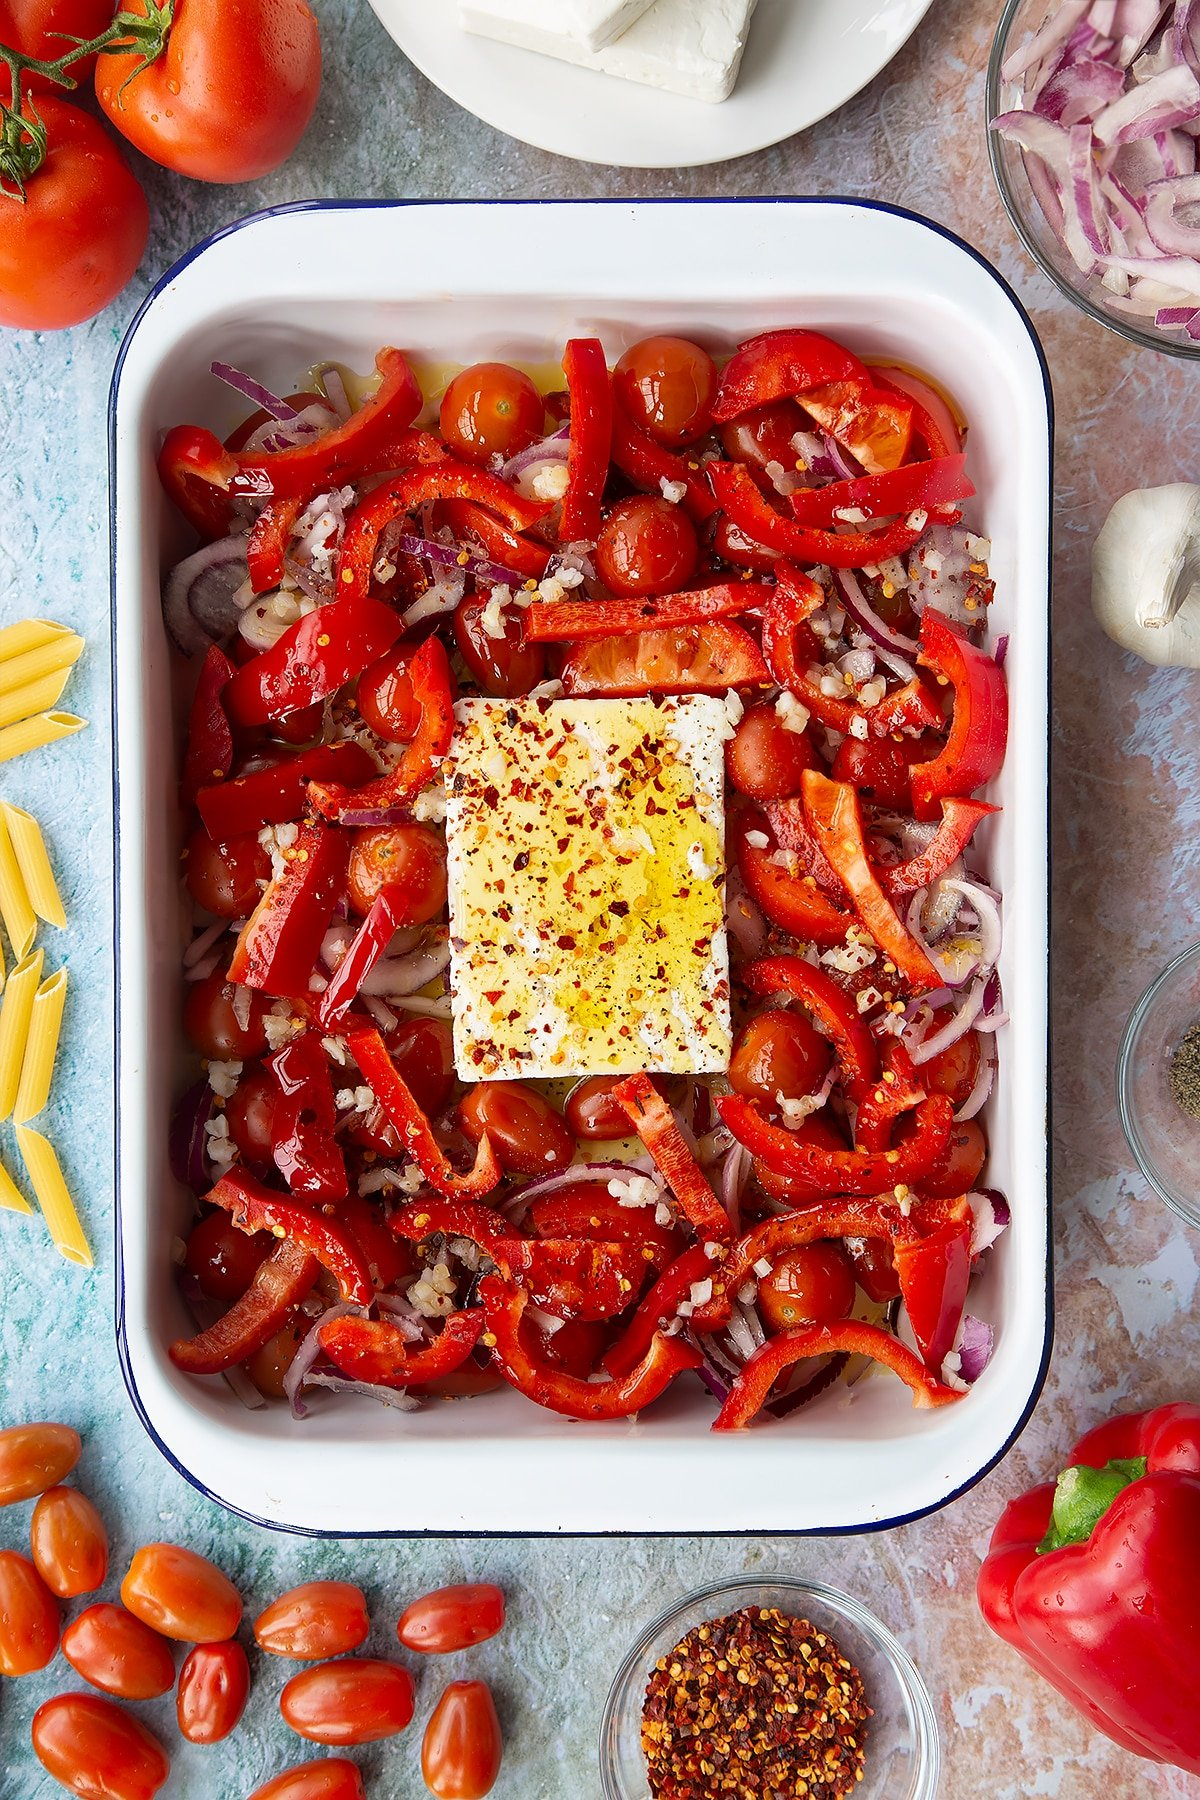 A block of feta surrounded by tomatoes, red pepper, red onion and garlic in a large white roasting tray, topped with olive oil, chilli flakes, salt and pepper. Ingredients to make baked feta pasta surround the tray.